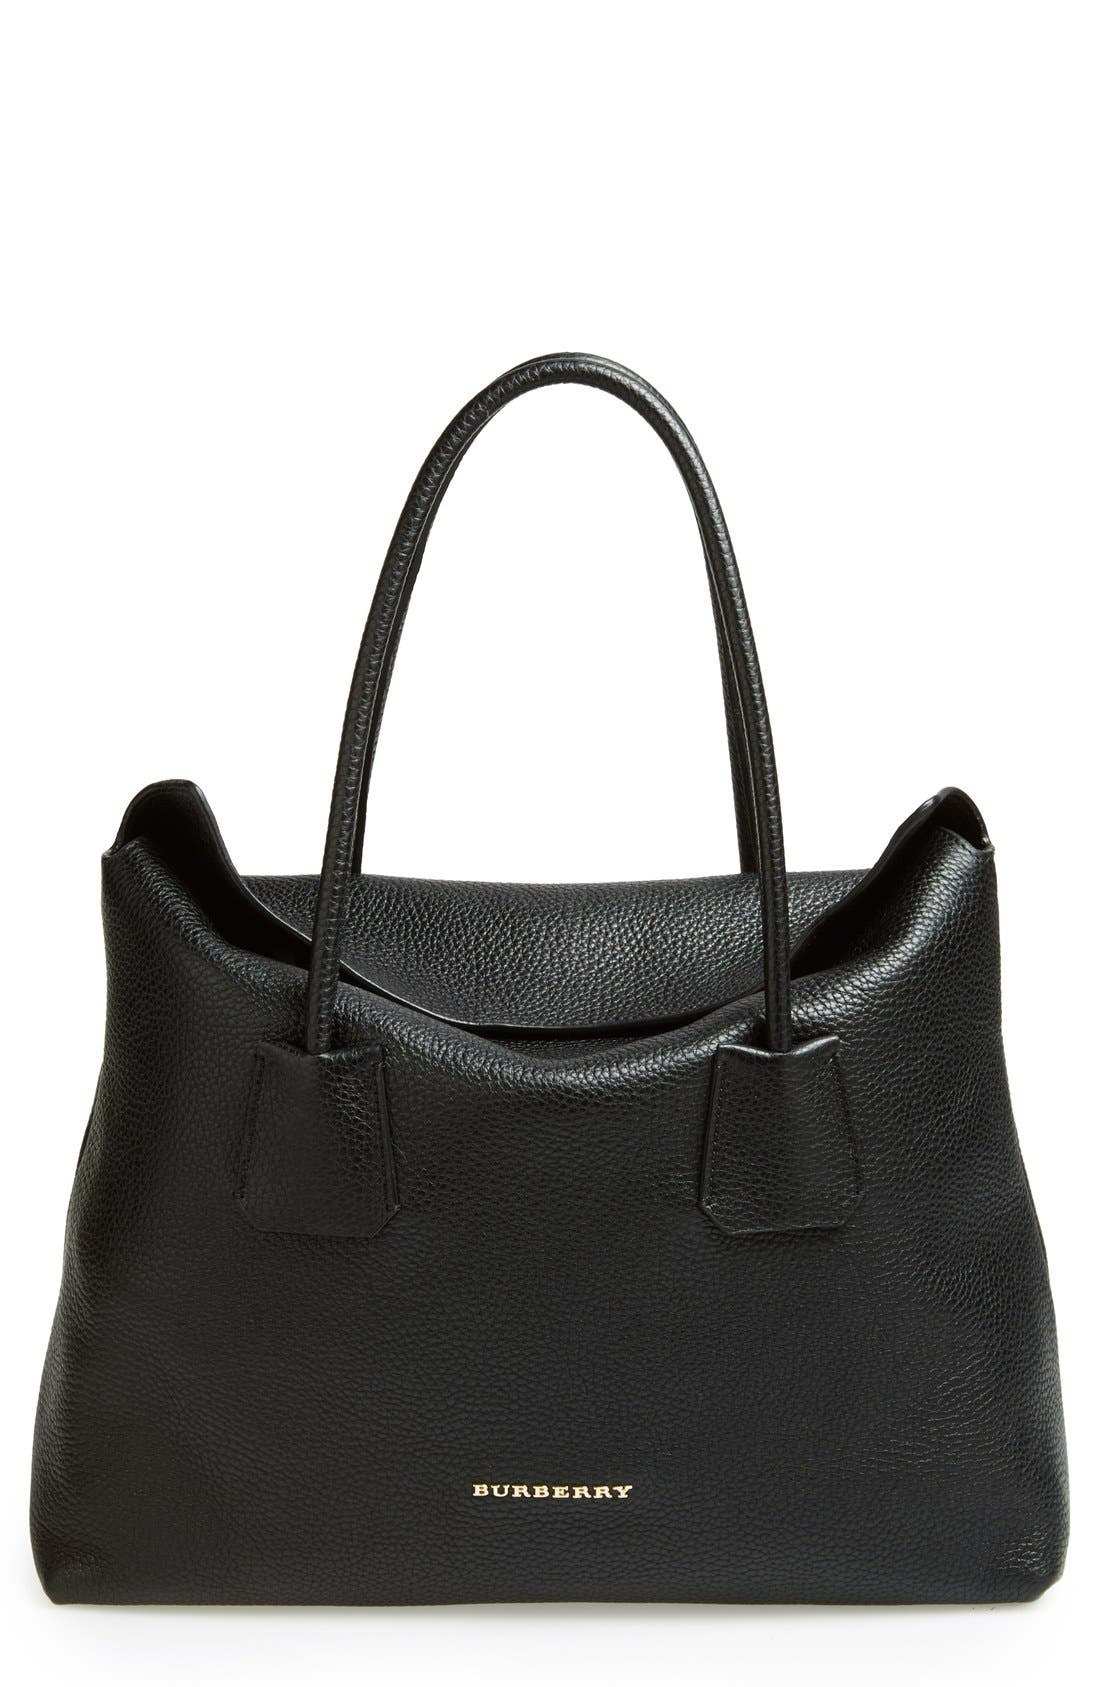 Main Image - Burberry 'Baynard' Leather Tote